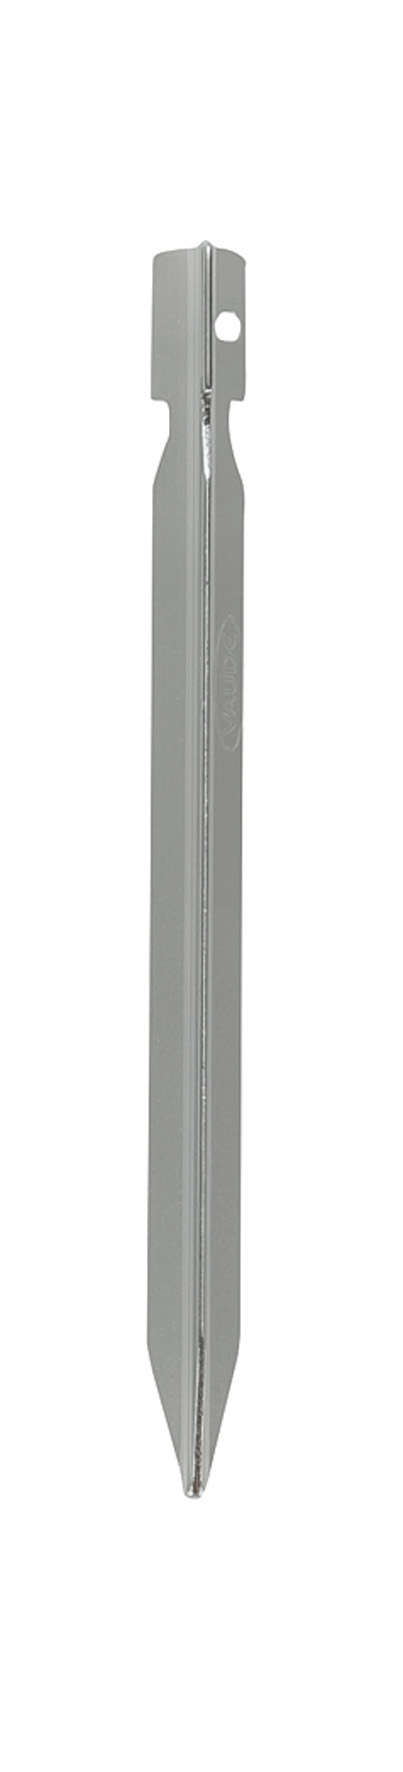 Vaude - Six Peg 18 cm (VPE6) - Tent Stakes